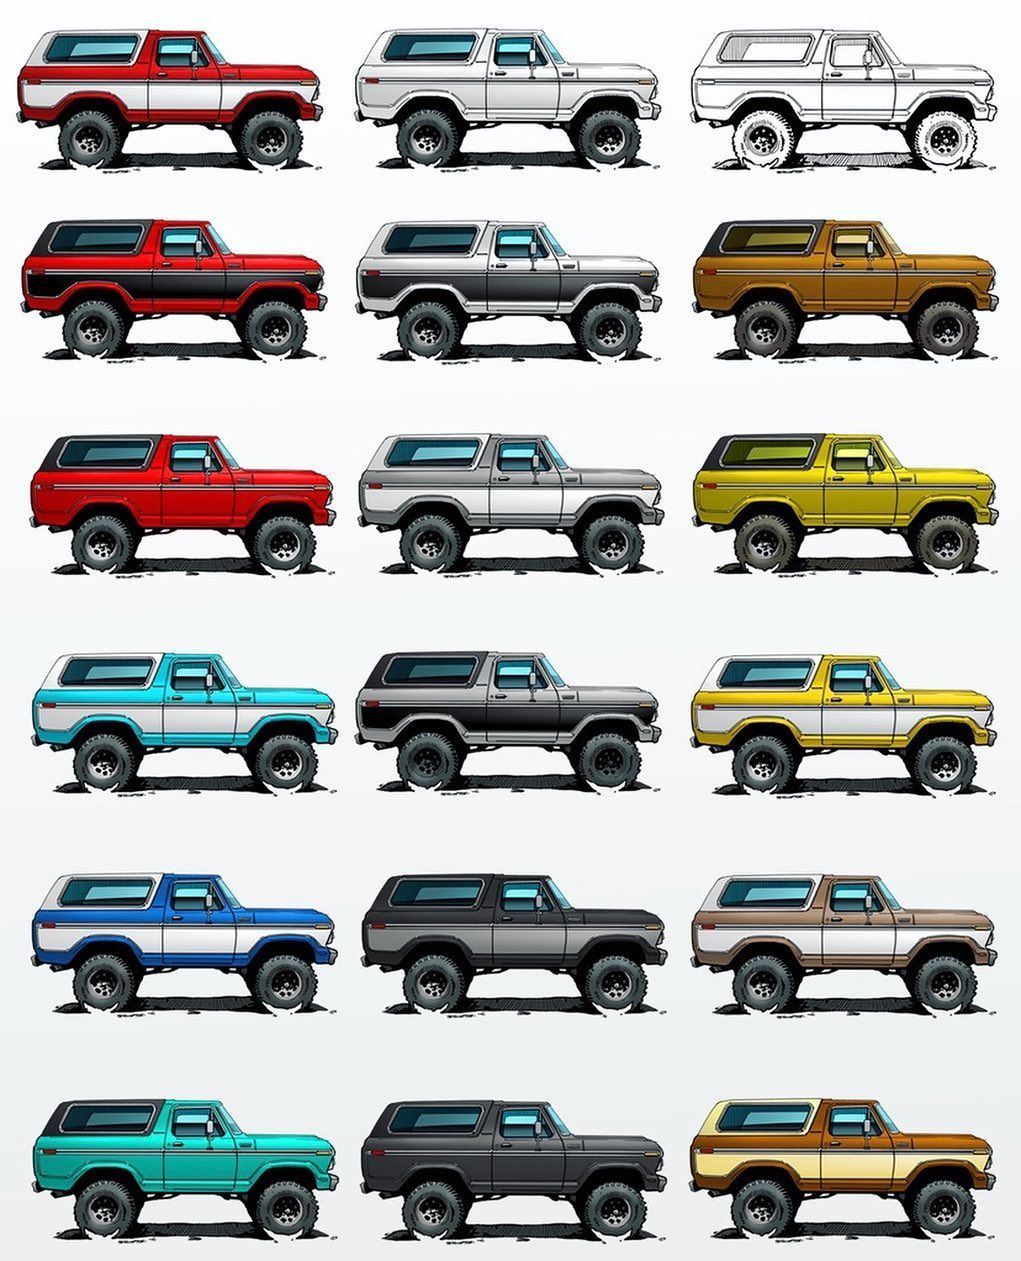 Pin By Kevin Robinson On Sick Rides In 2020 Classic Ford Trucks